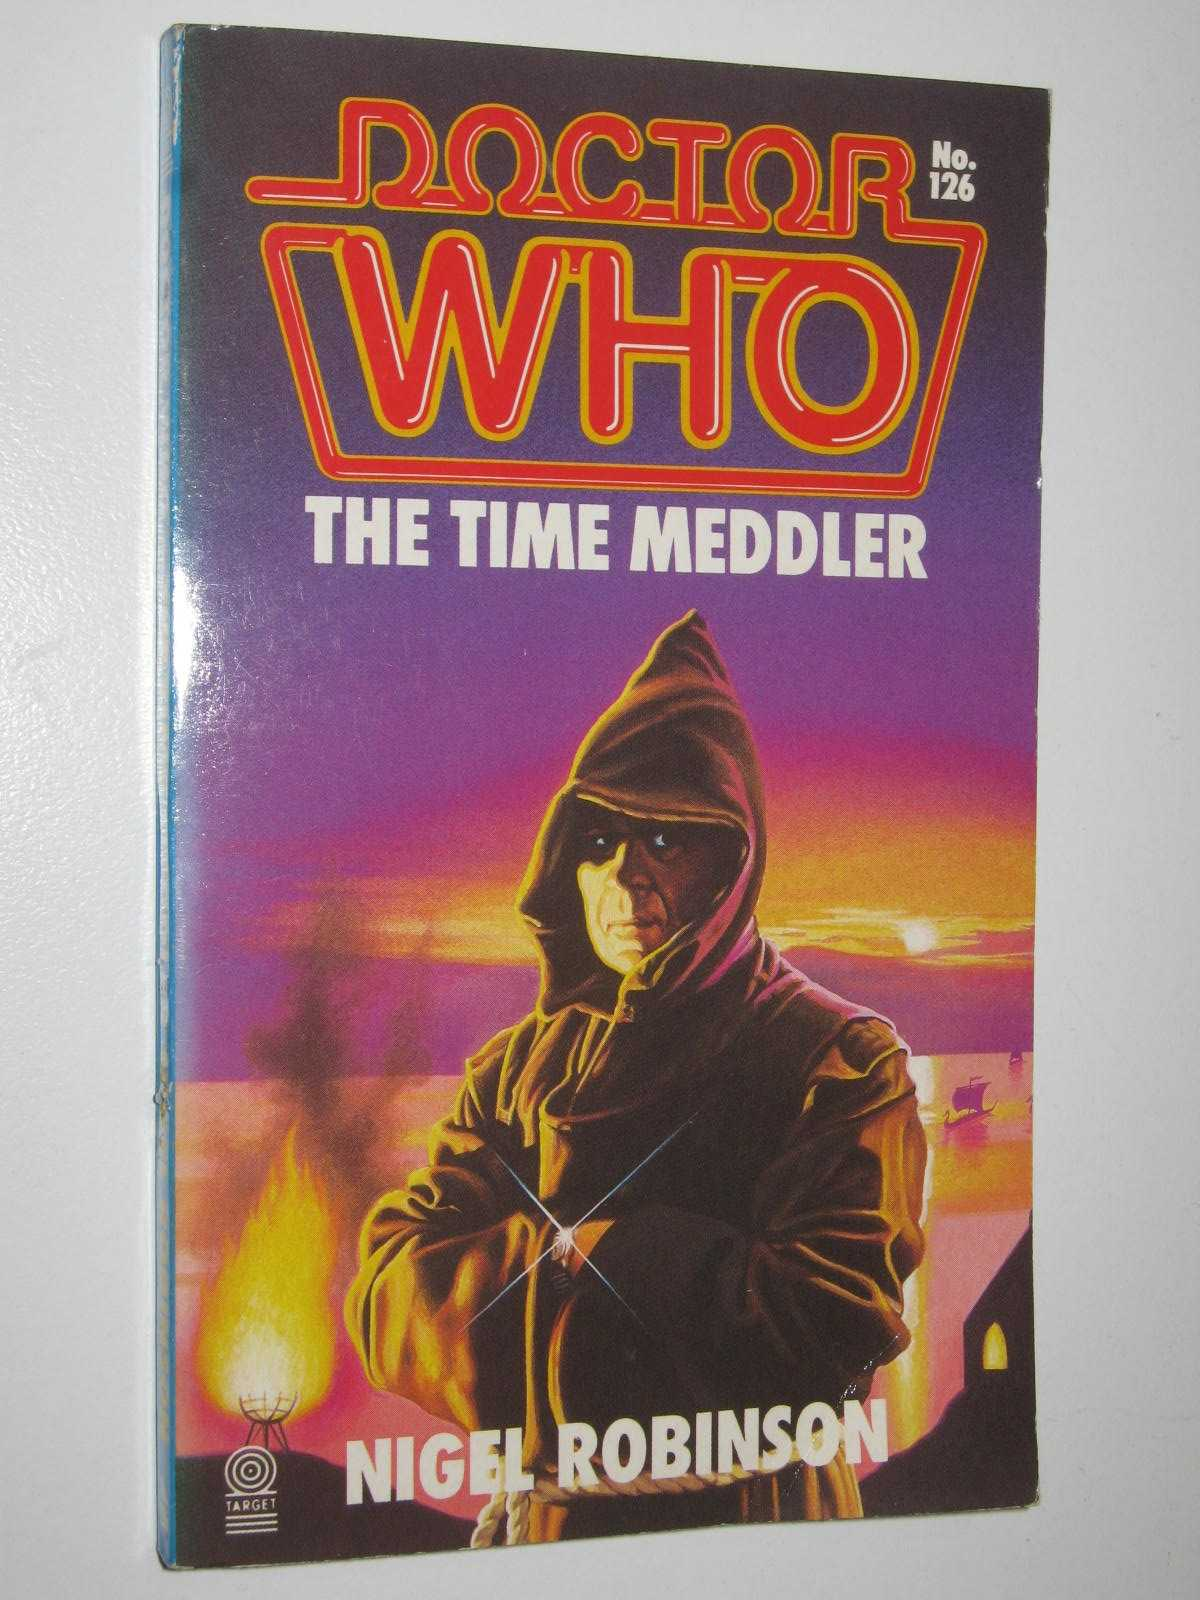 Image for The Time Meddler - Doctor Who Library #126